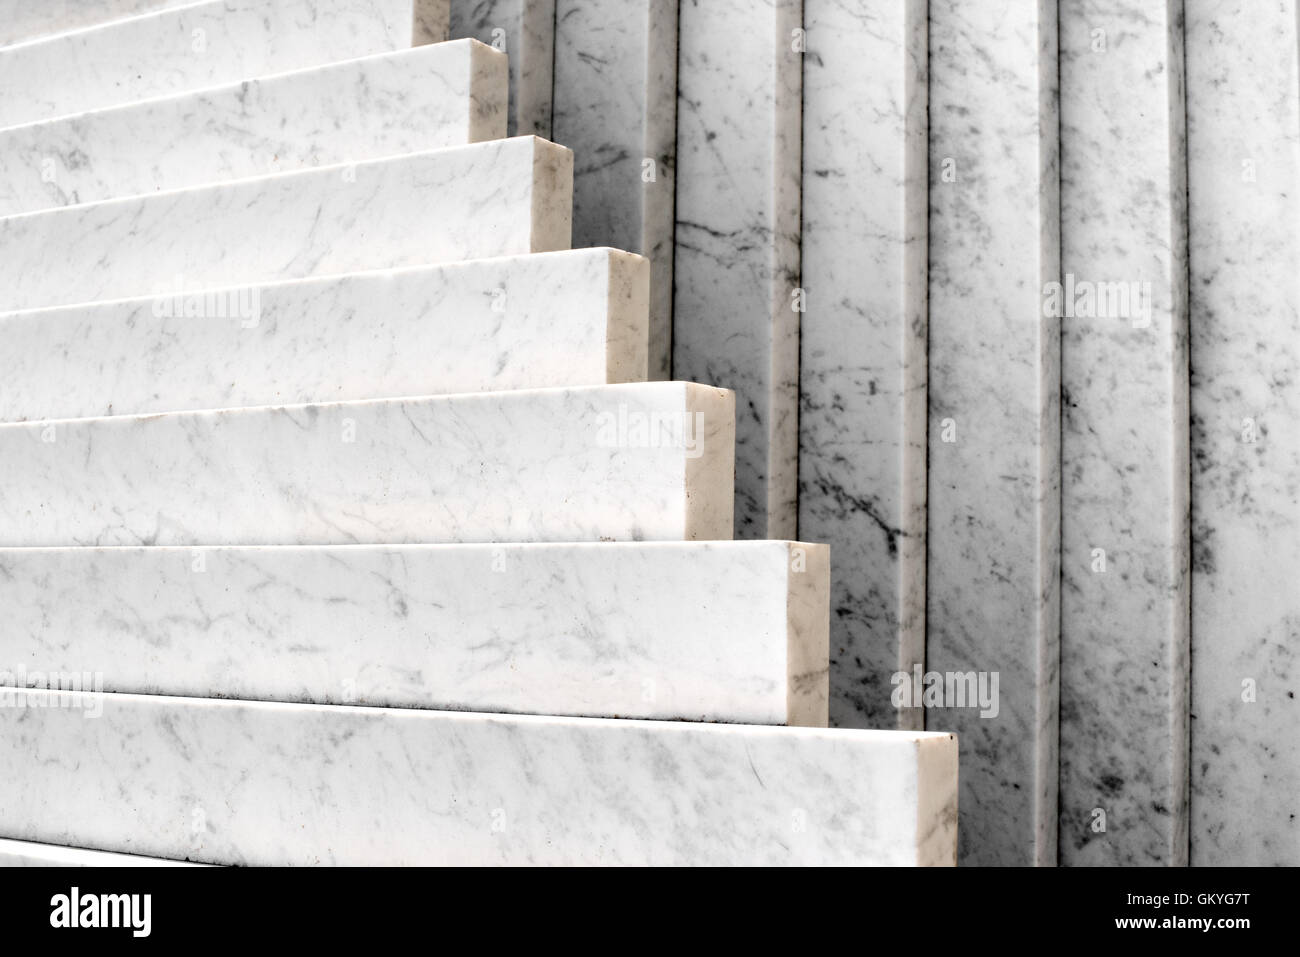 Monument architectural detail - Stock Image